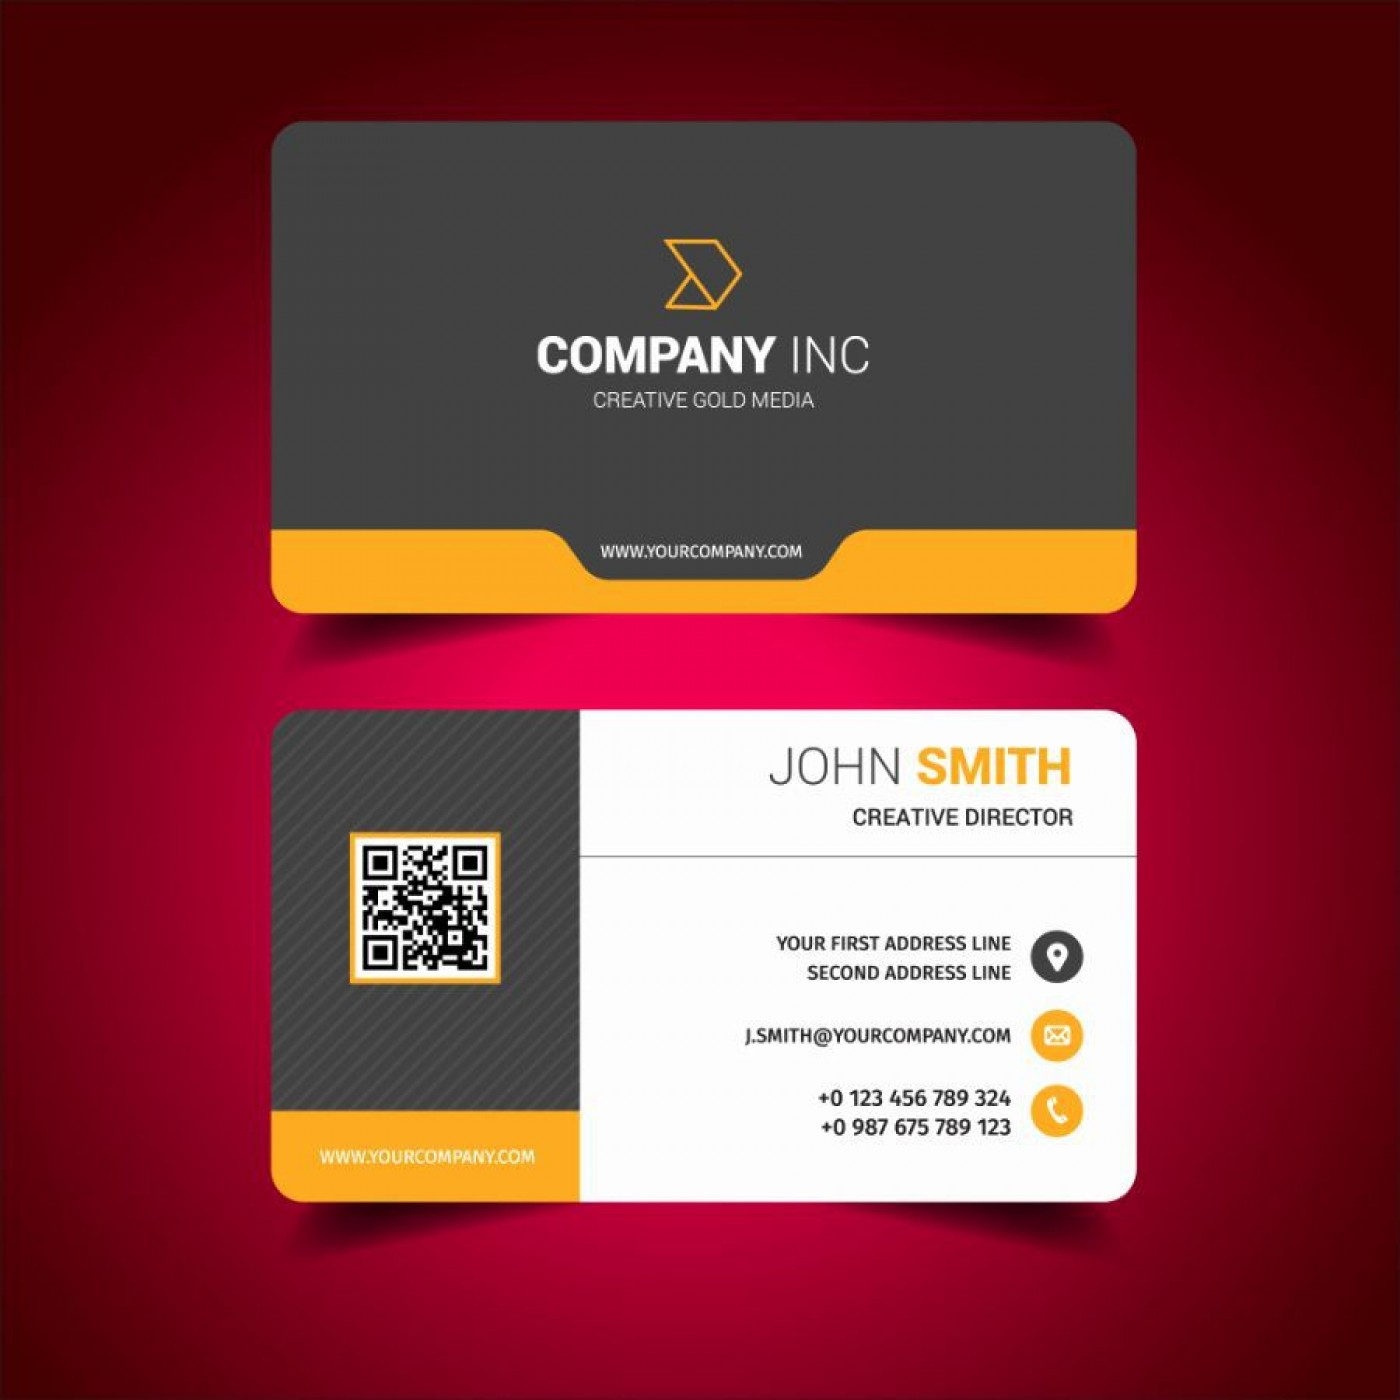 001 Exceptional Download Busines Card Template Concept  For Microsoft Publisher Adobe Illustrator Visiting Psd1400